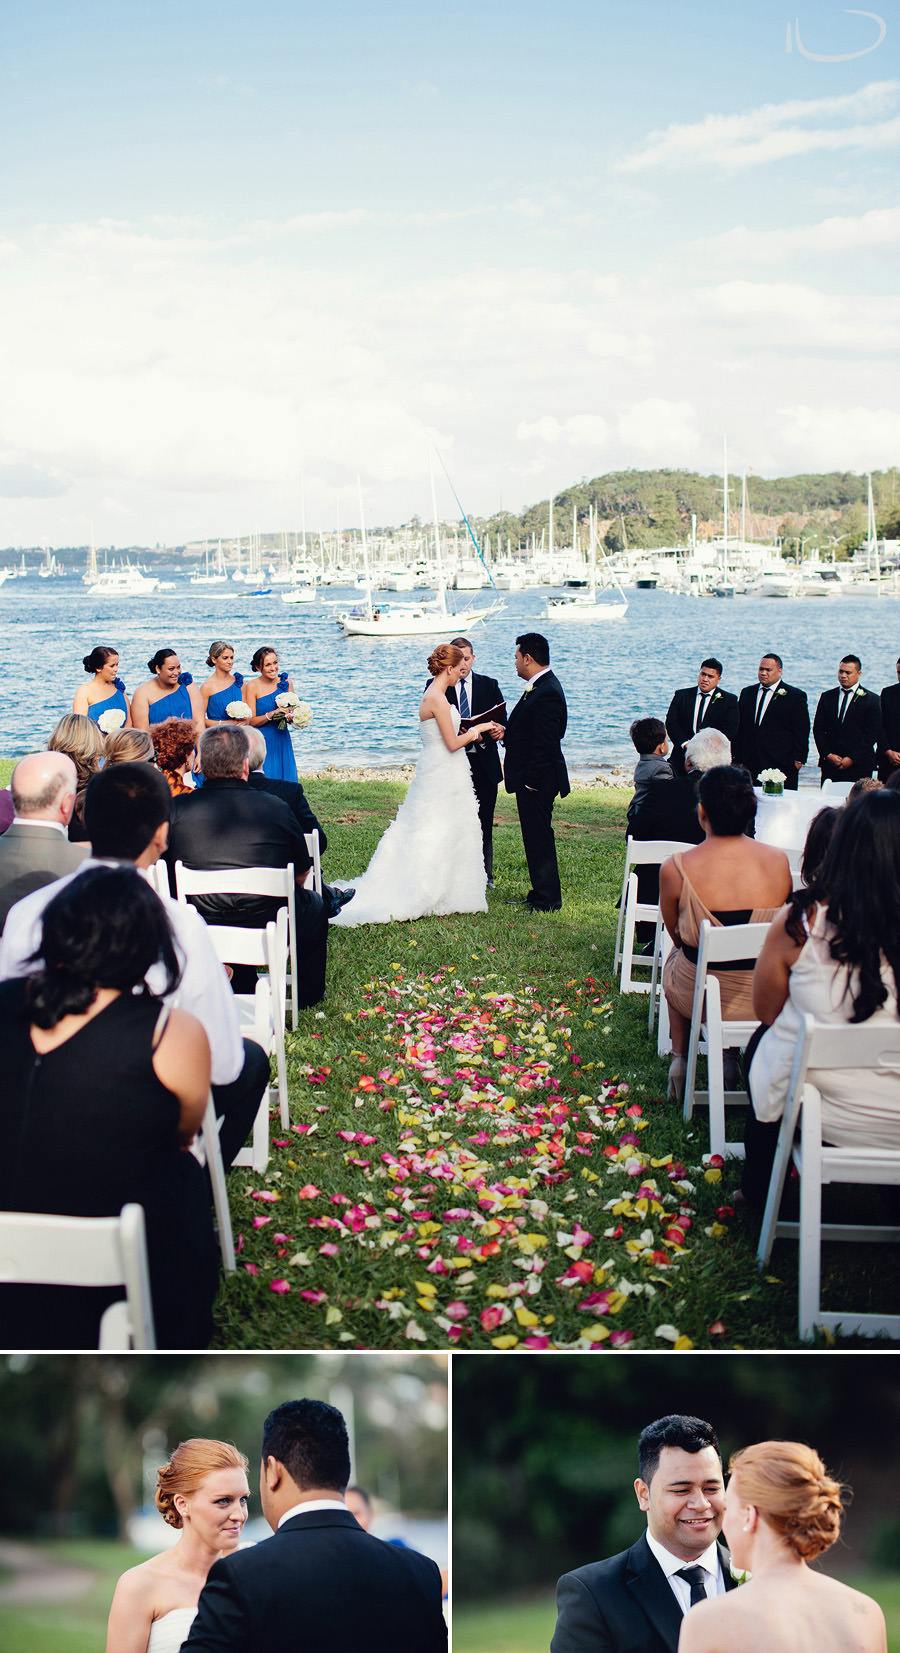 Manly Wedding Photography: Ceremony at Ellery's Punt Reserve Seaforth